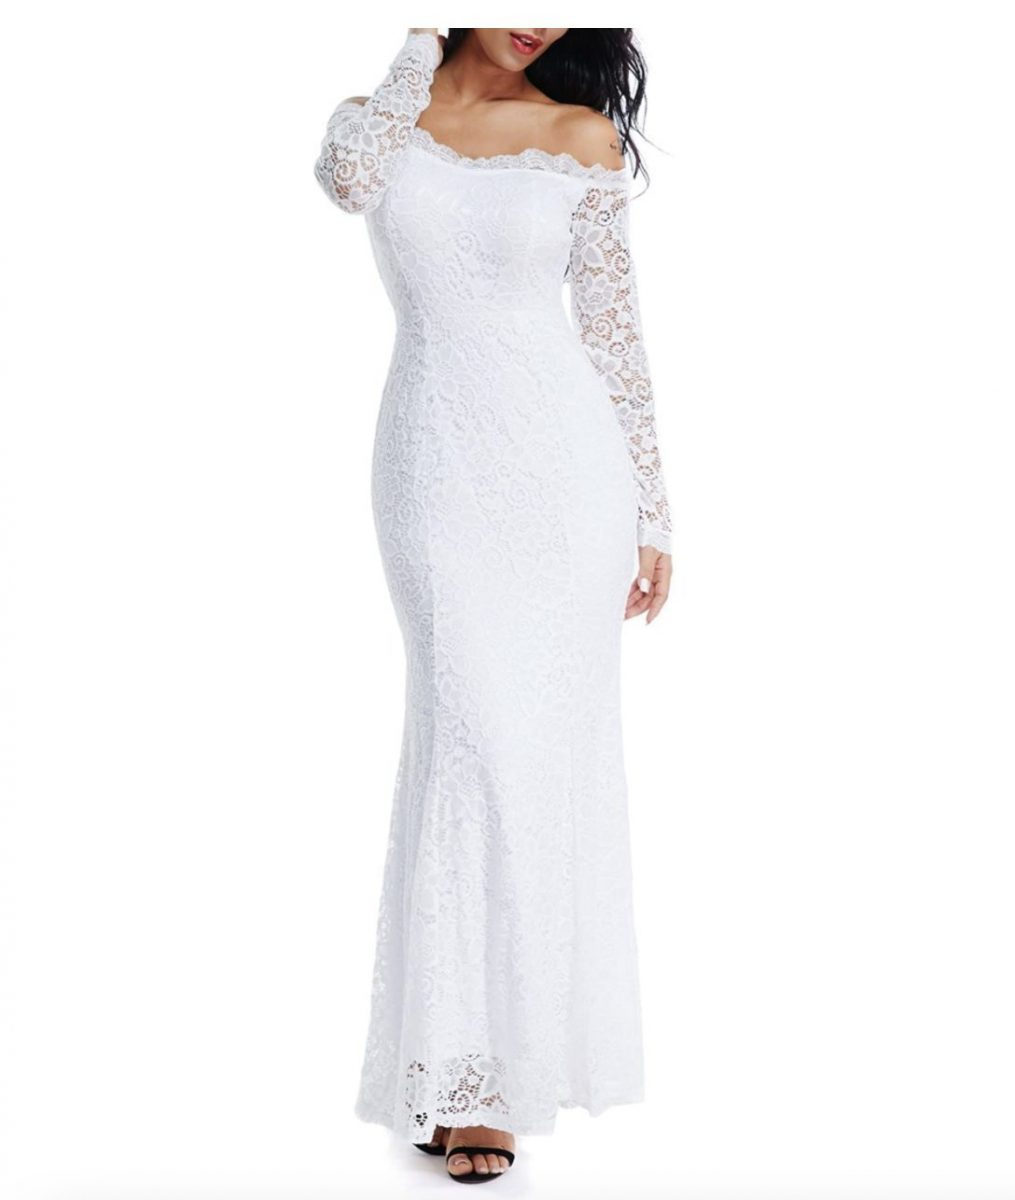 Affordable Top Rated Wedding Dresses Under $100